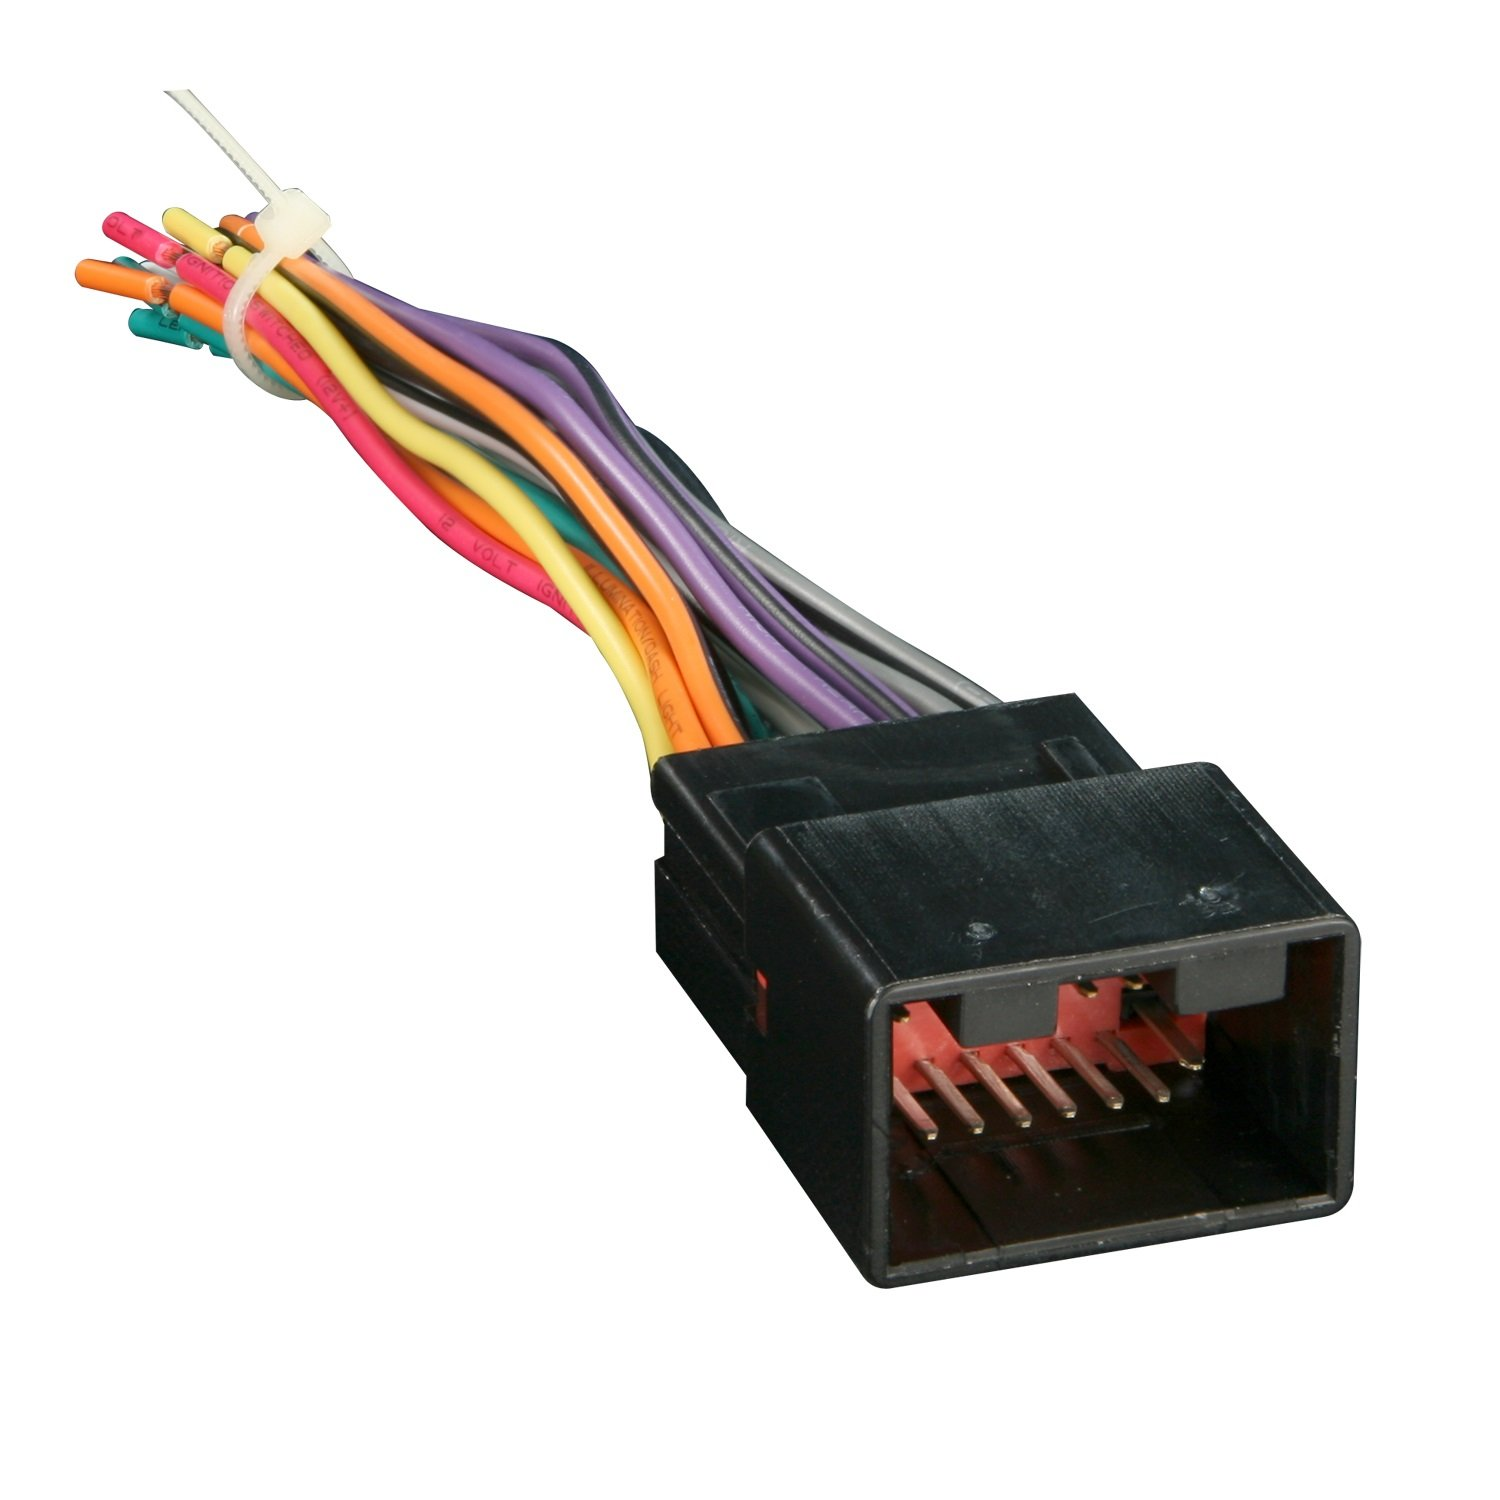 61X4UocRDeL._SL1500_ amazon com wiring harnesses electrical automotive metra 70-9221 receiver wiring harness at gsmx.co